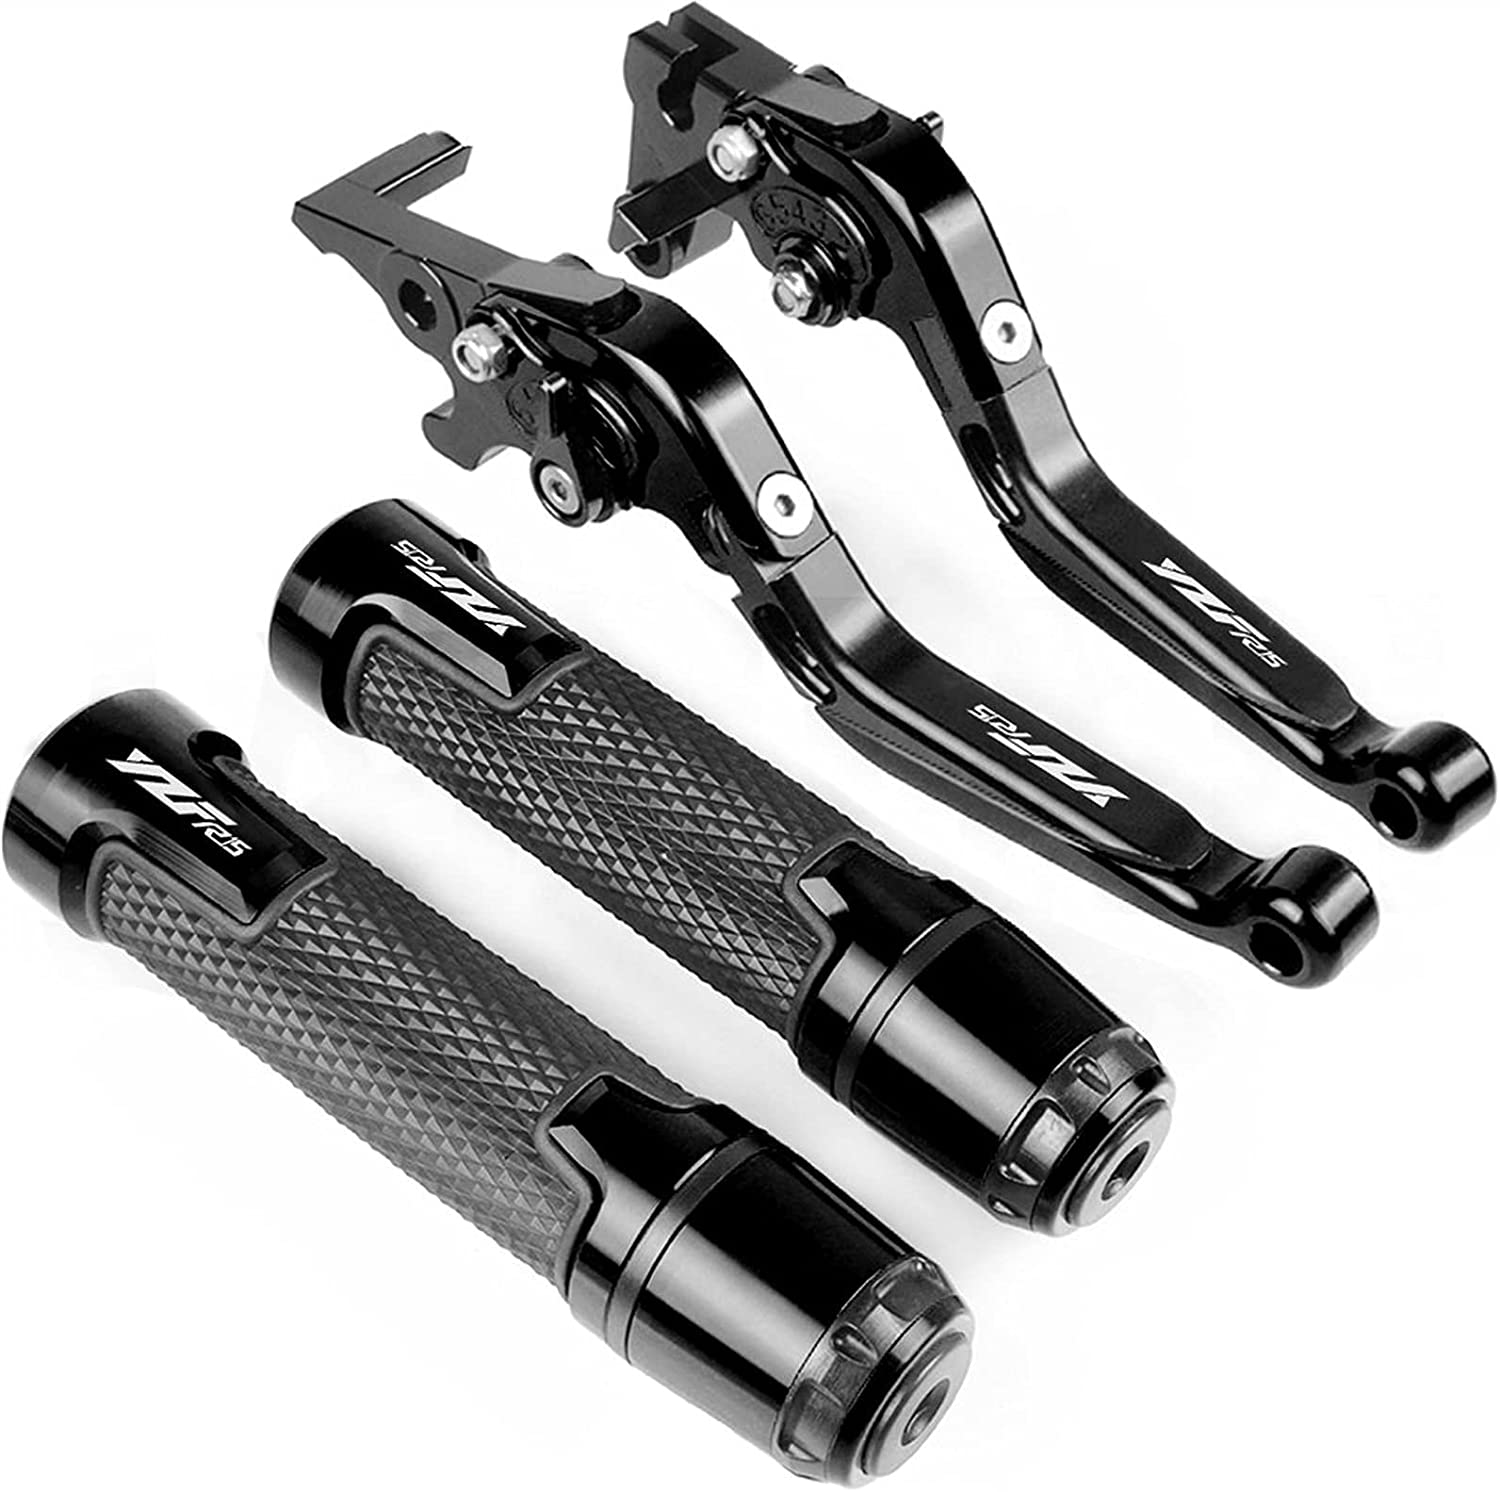 Motorbike Grips Motorcycle Brake Challenge the lowest price of Japan ☆ Clutch Our shop most popular Levers Gr Handlebar Hand